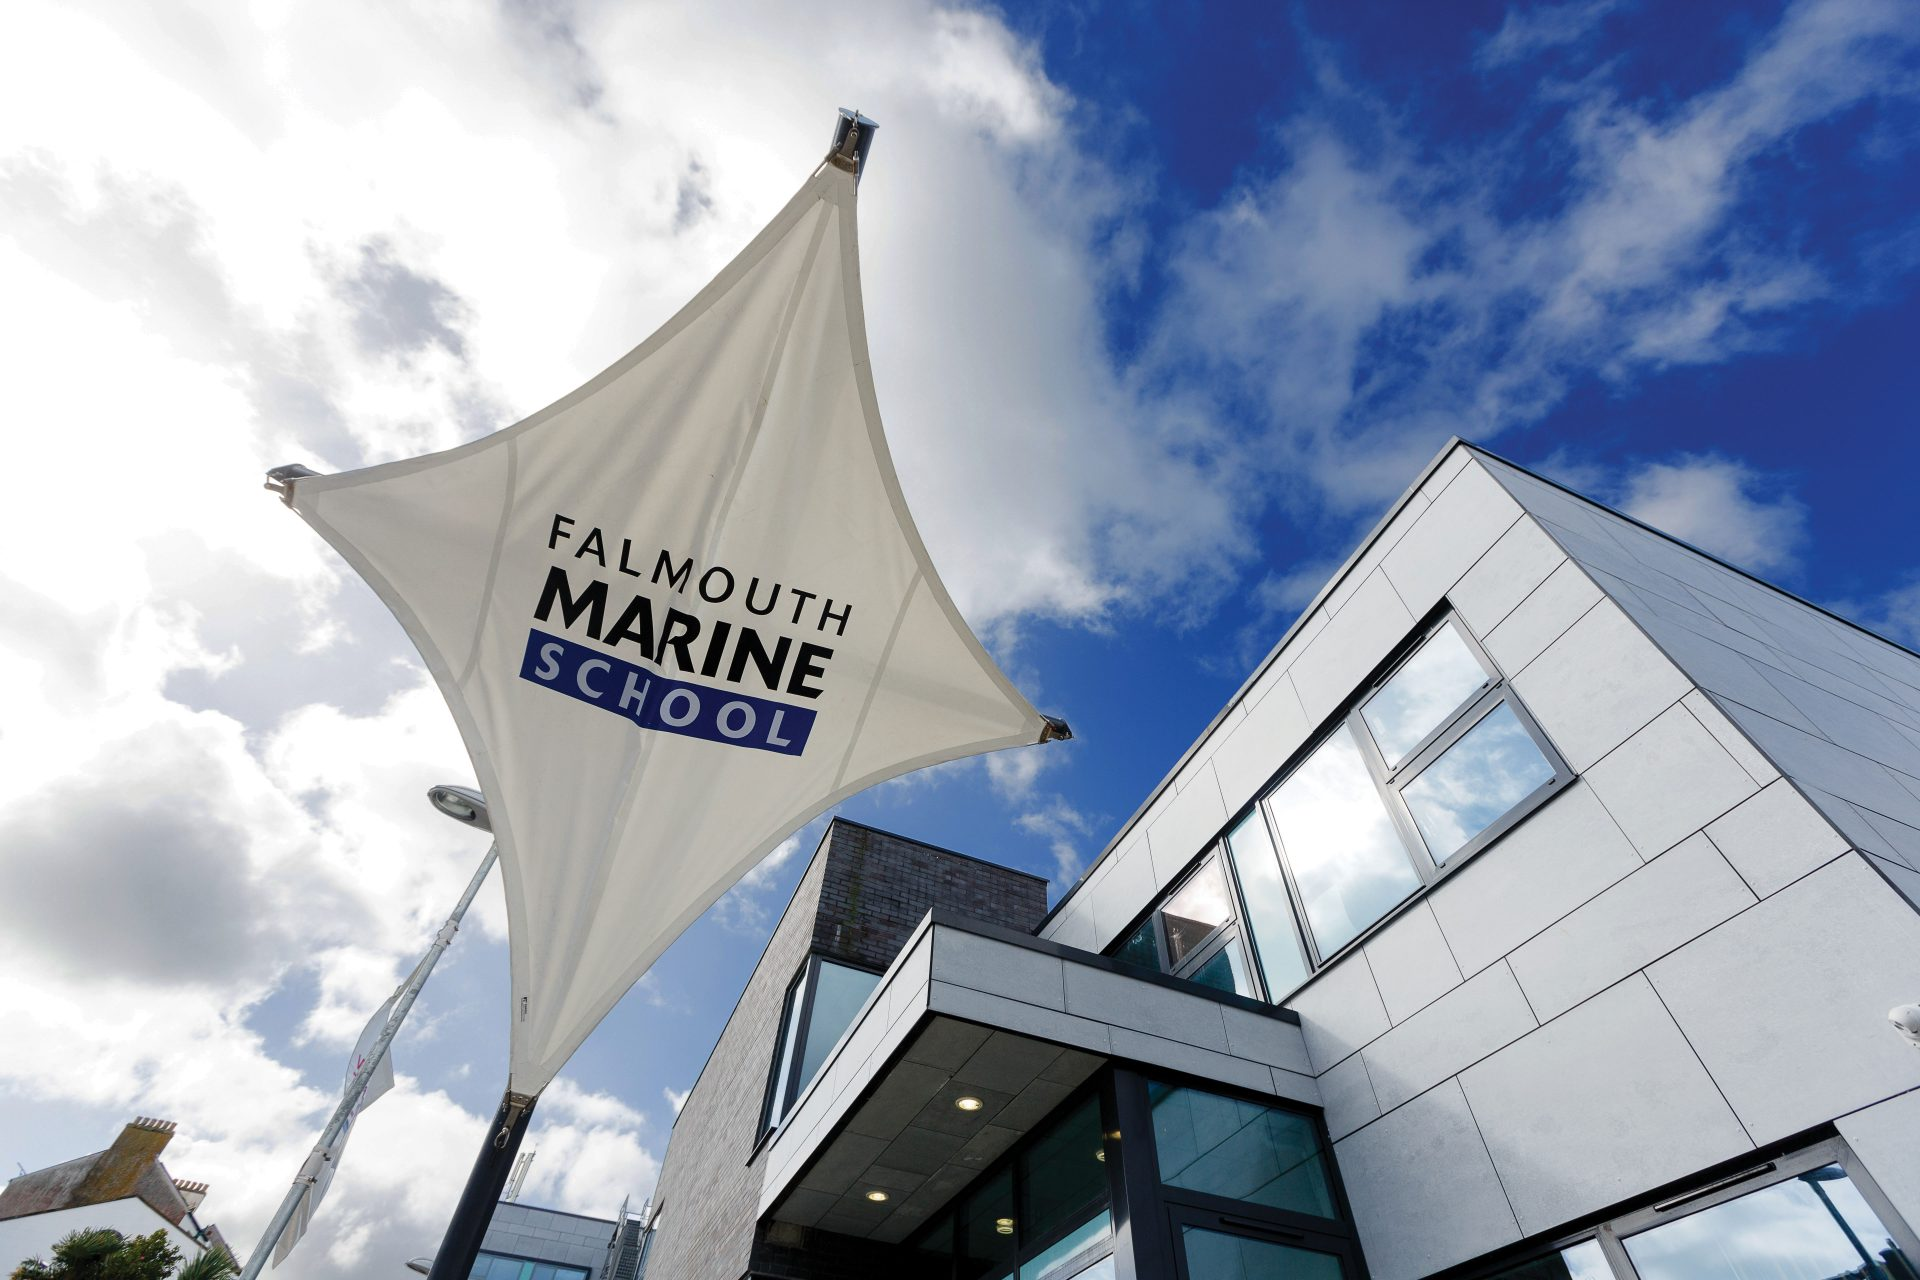 Falmouth Marine School's main entrance and logo on a sail